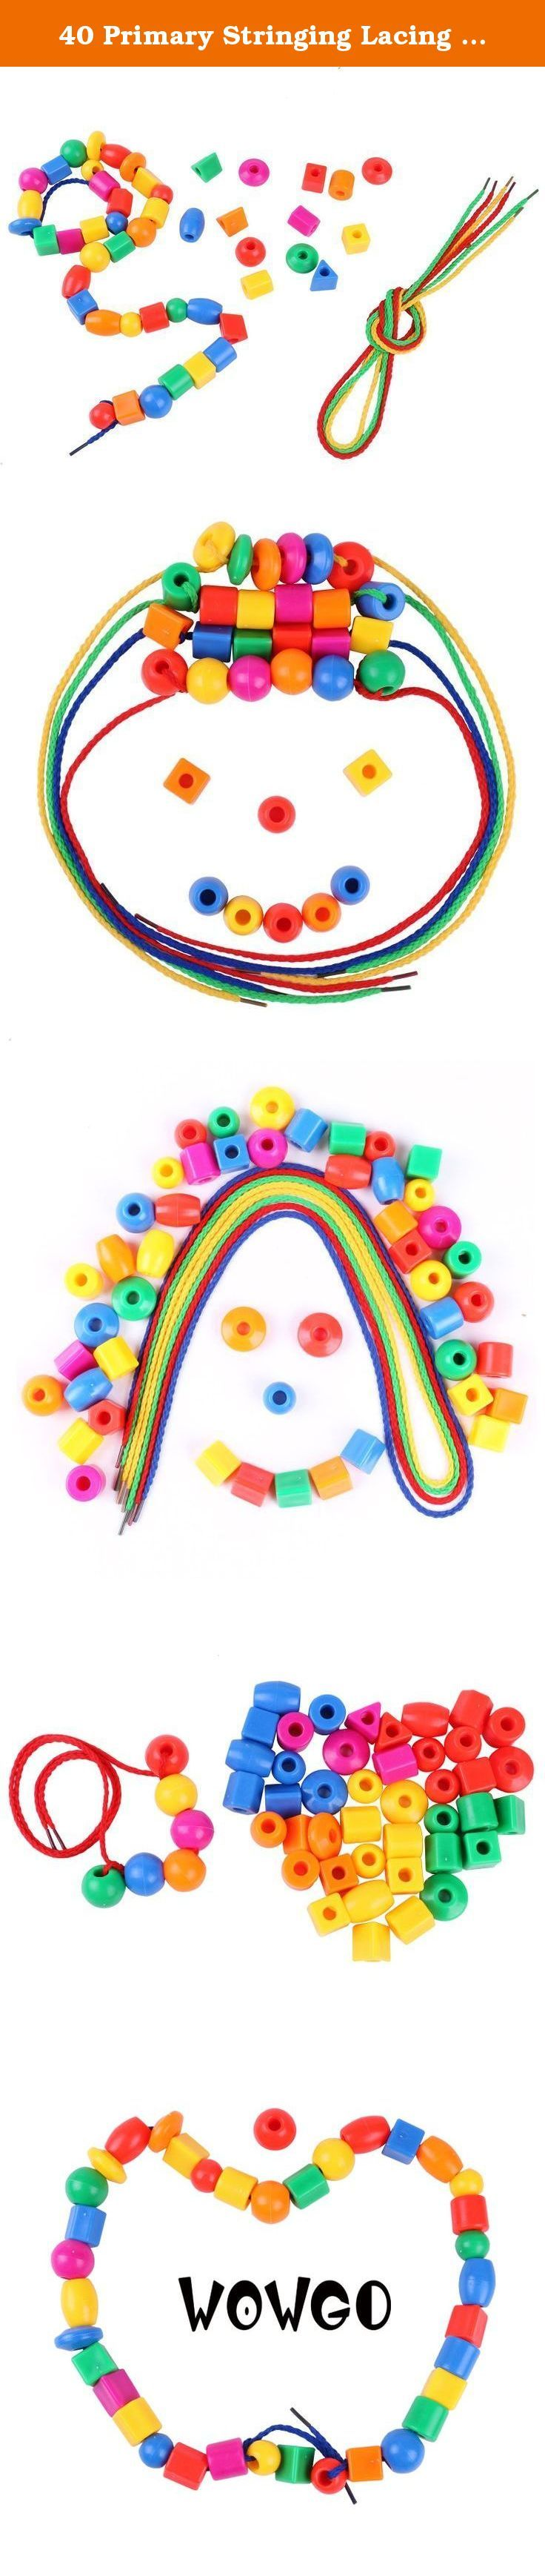 40 Primary Stringing Lacing Beads for kids,Includes 8 Strings, Montessori Toys for Fine Motor Skills Autism OT. ★100% MONEY GUARANTEE: we offer superb educational toys and excellent customer service and if you're not totally satisfied with your purchase; we also offer a risk-free, No-Questions-Asked, 100% Money-back Guarantee! Click the orange button to order now!.